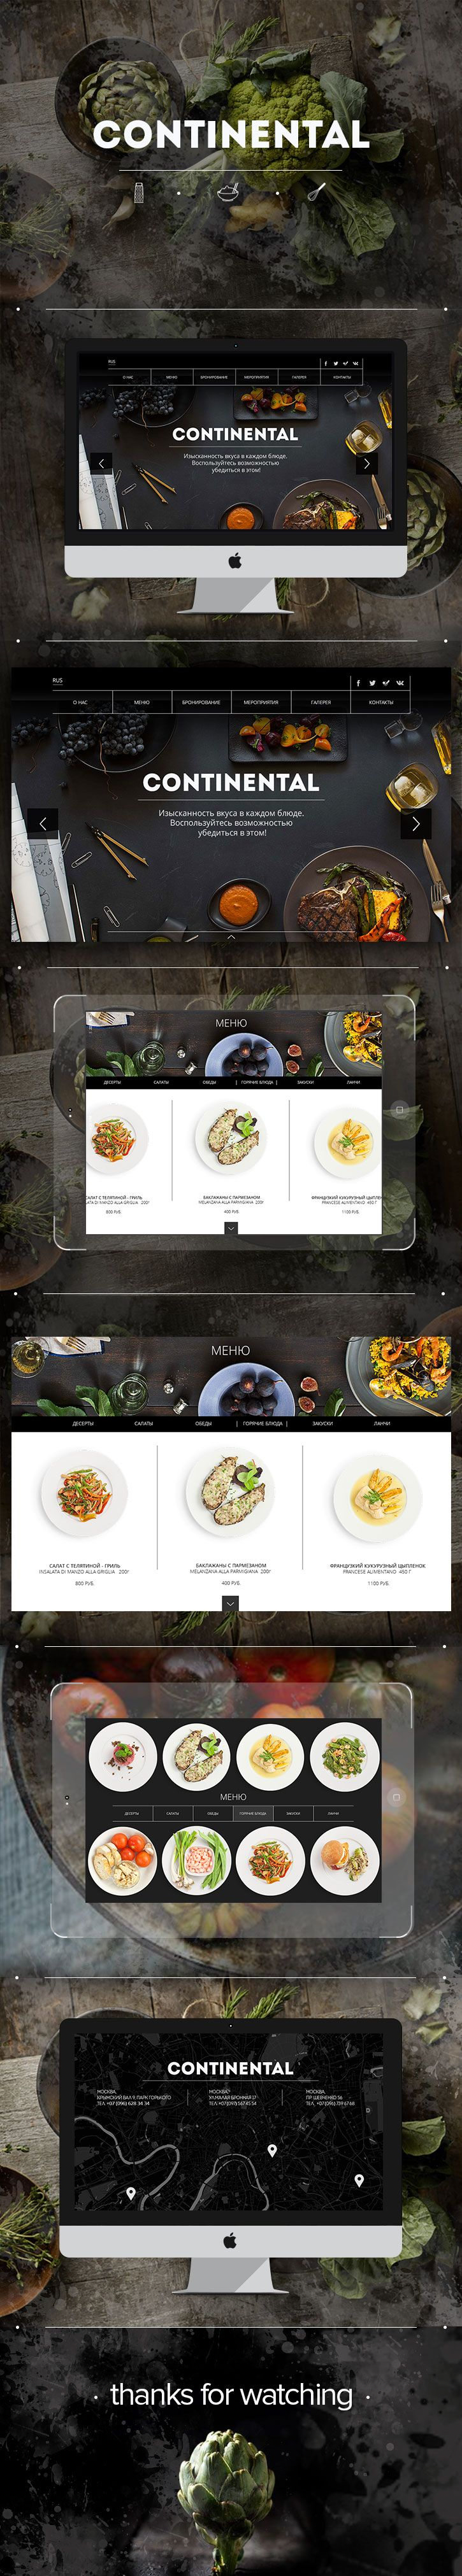 Web site for Continental restaurant